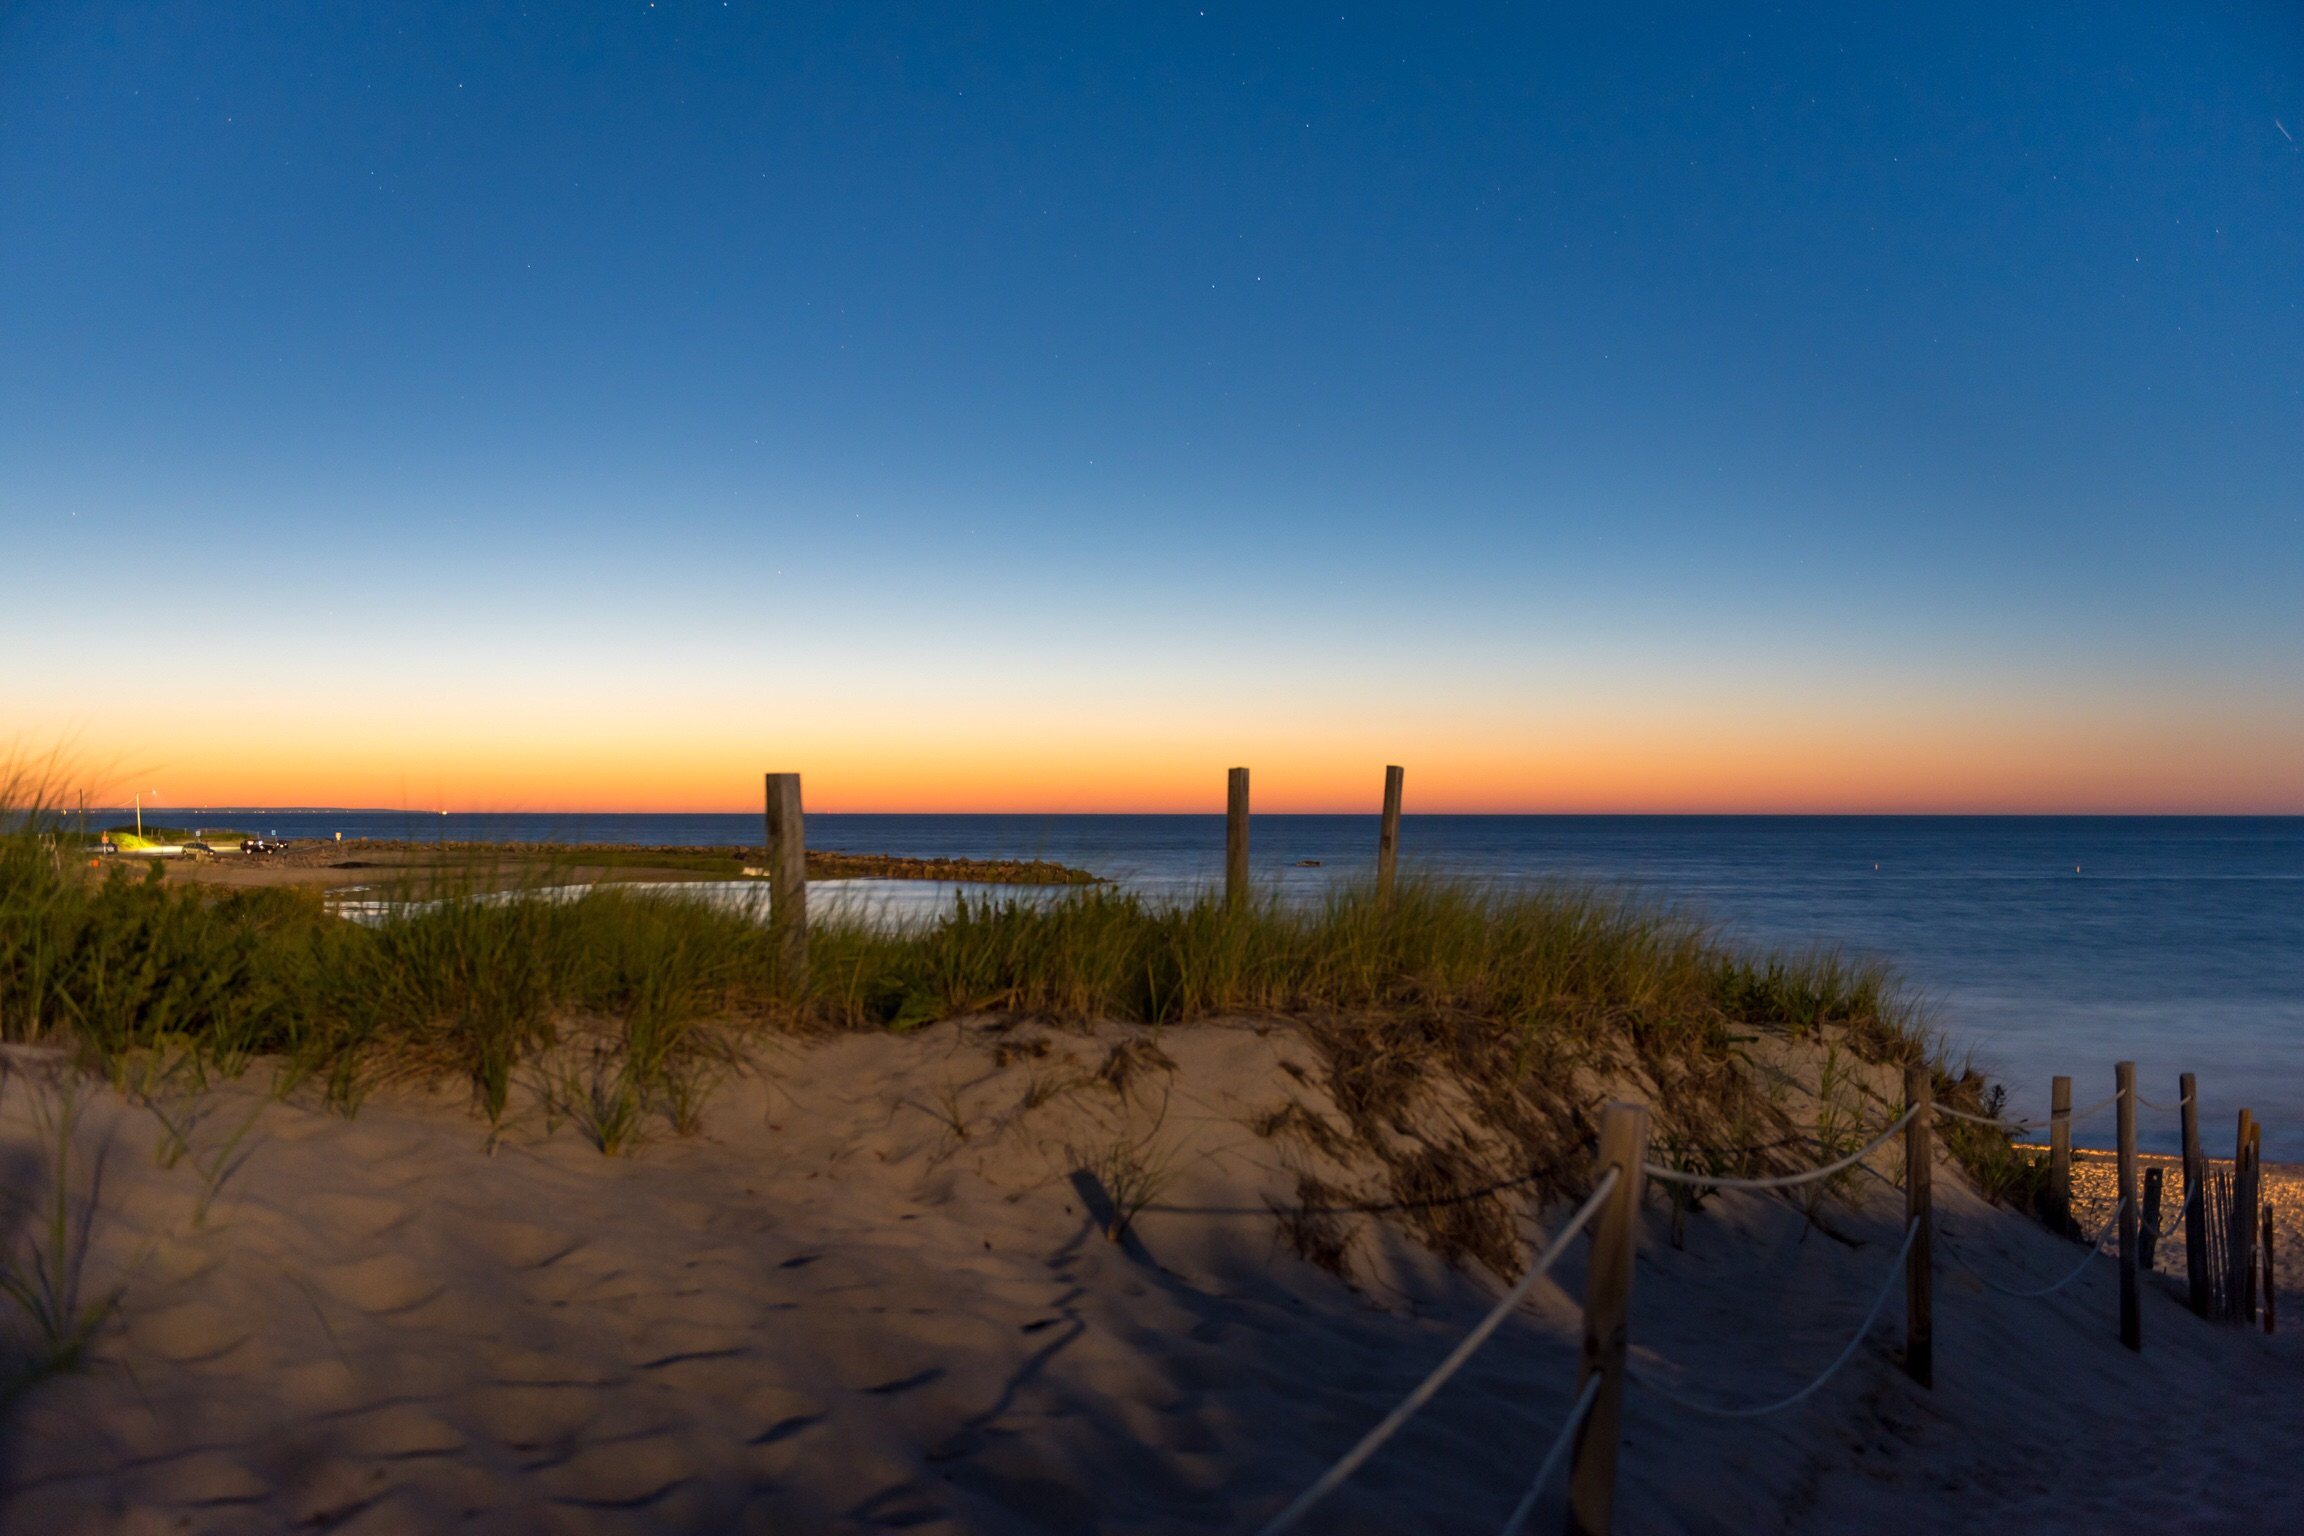 Love the dunes at night!